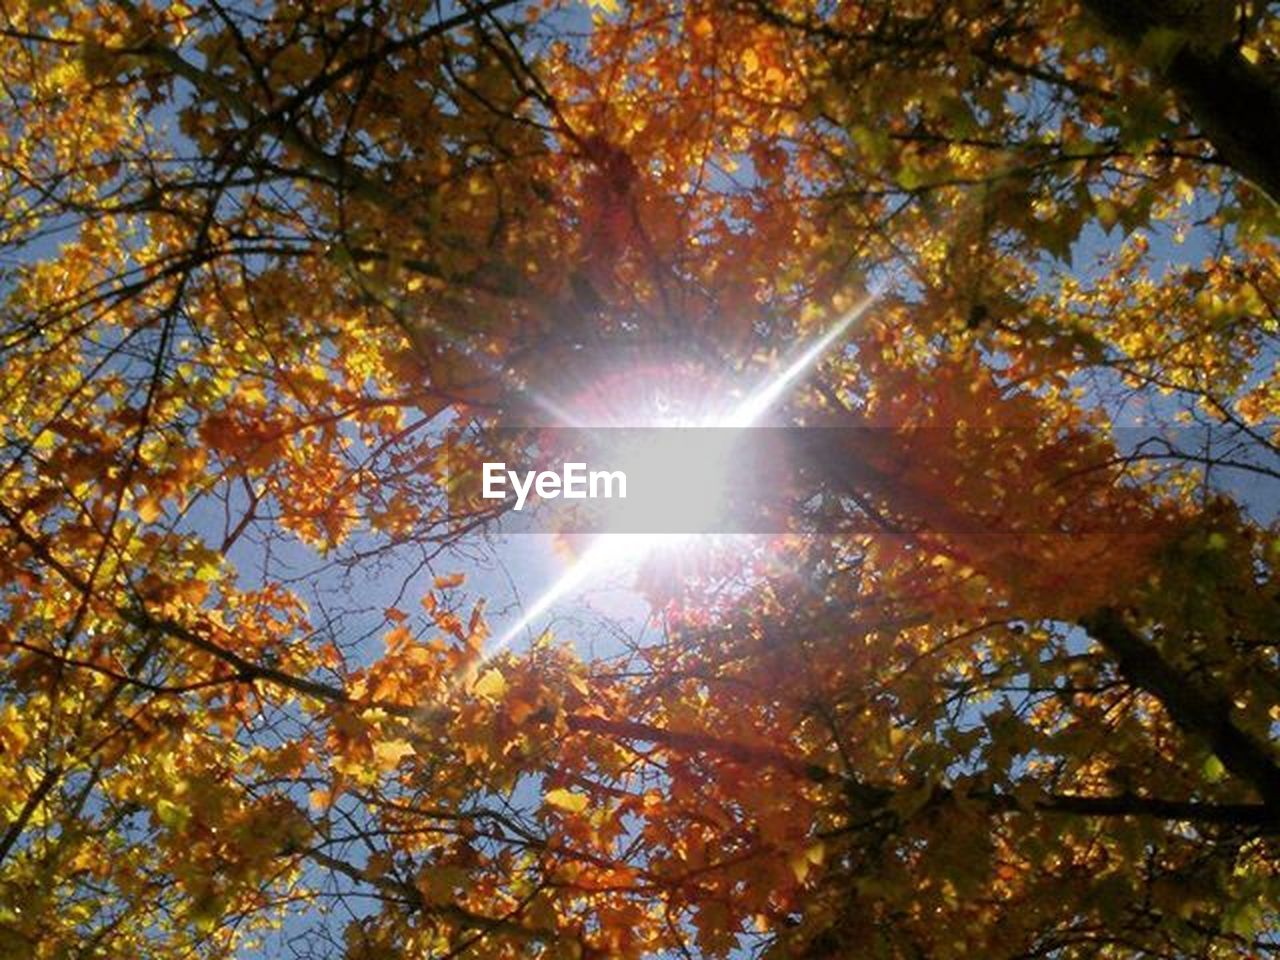 autumn, leaf, tree, sunbeam, sunlight, nature, low angle view, sun, change, lens flare, beauty in nature, branch, outdoors, sunny, day, sky, no people, maple tree, scenics, growth, forest, deciduous tree